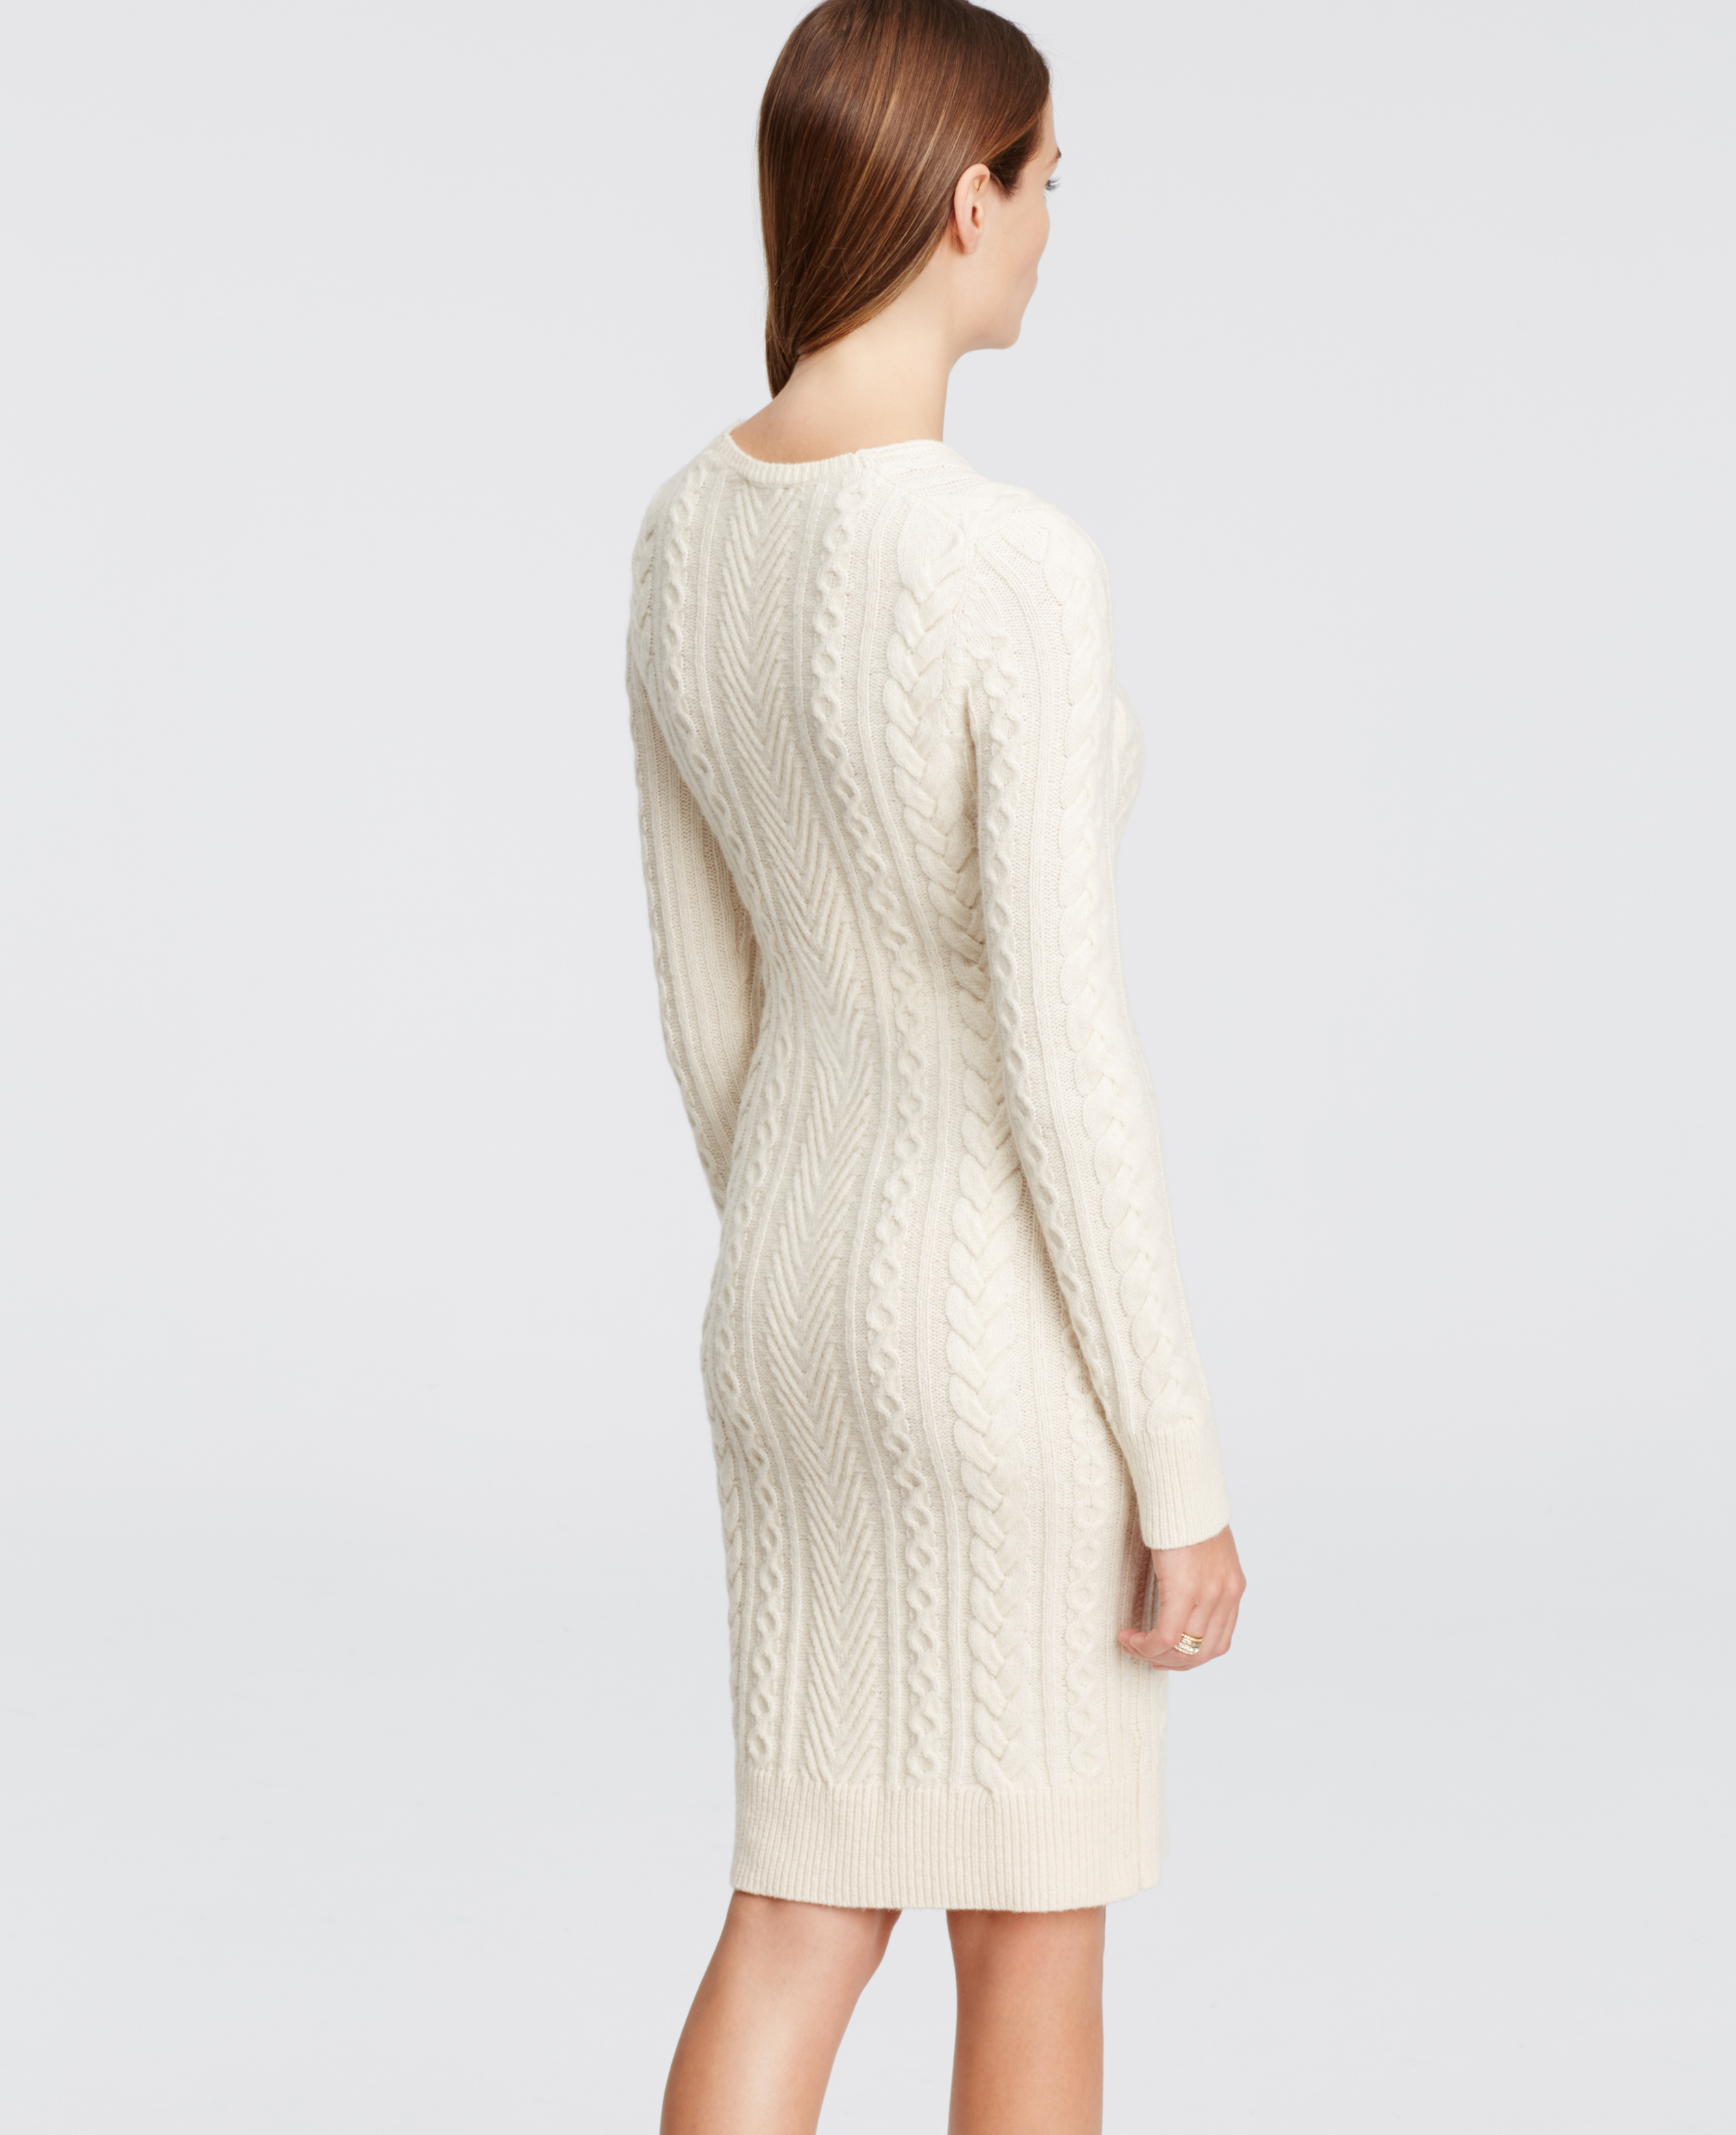 bb1a7f668ff Ann Taylor Petite V-neck Sweater Dress in Natural - Lyst